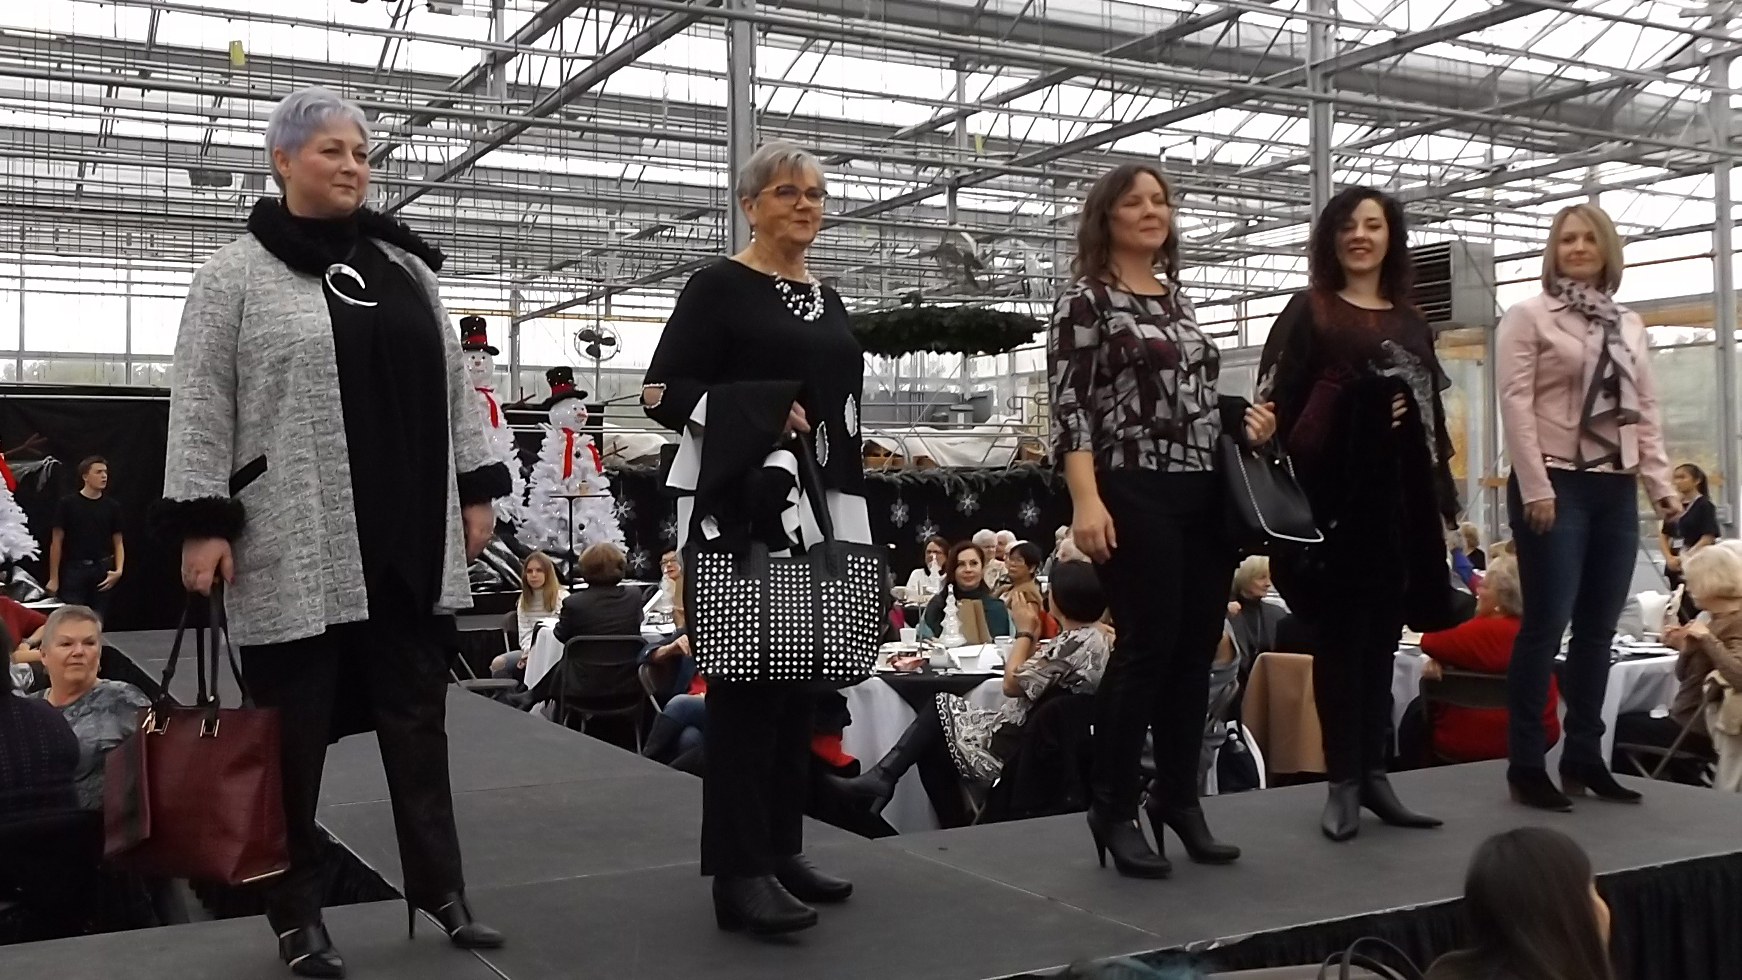 Wilmot councillors Cheryl Gordijk, Jennifer Pfenning, and Angie Hallman were amongst the models at a charity fashion show in Petersburg on Sunday Oct. 27.